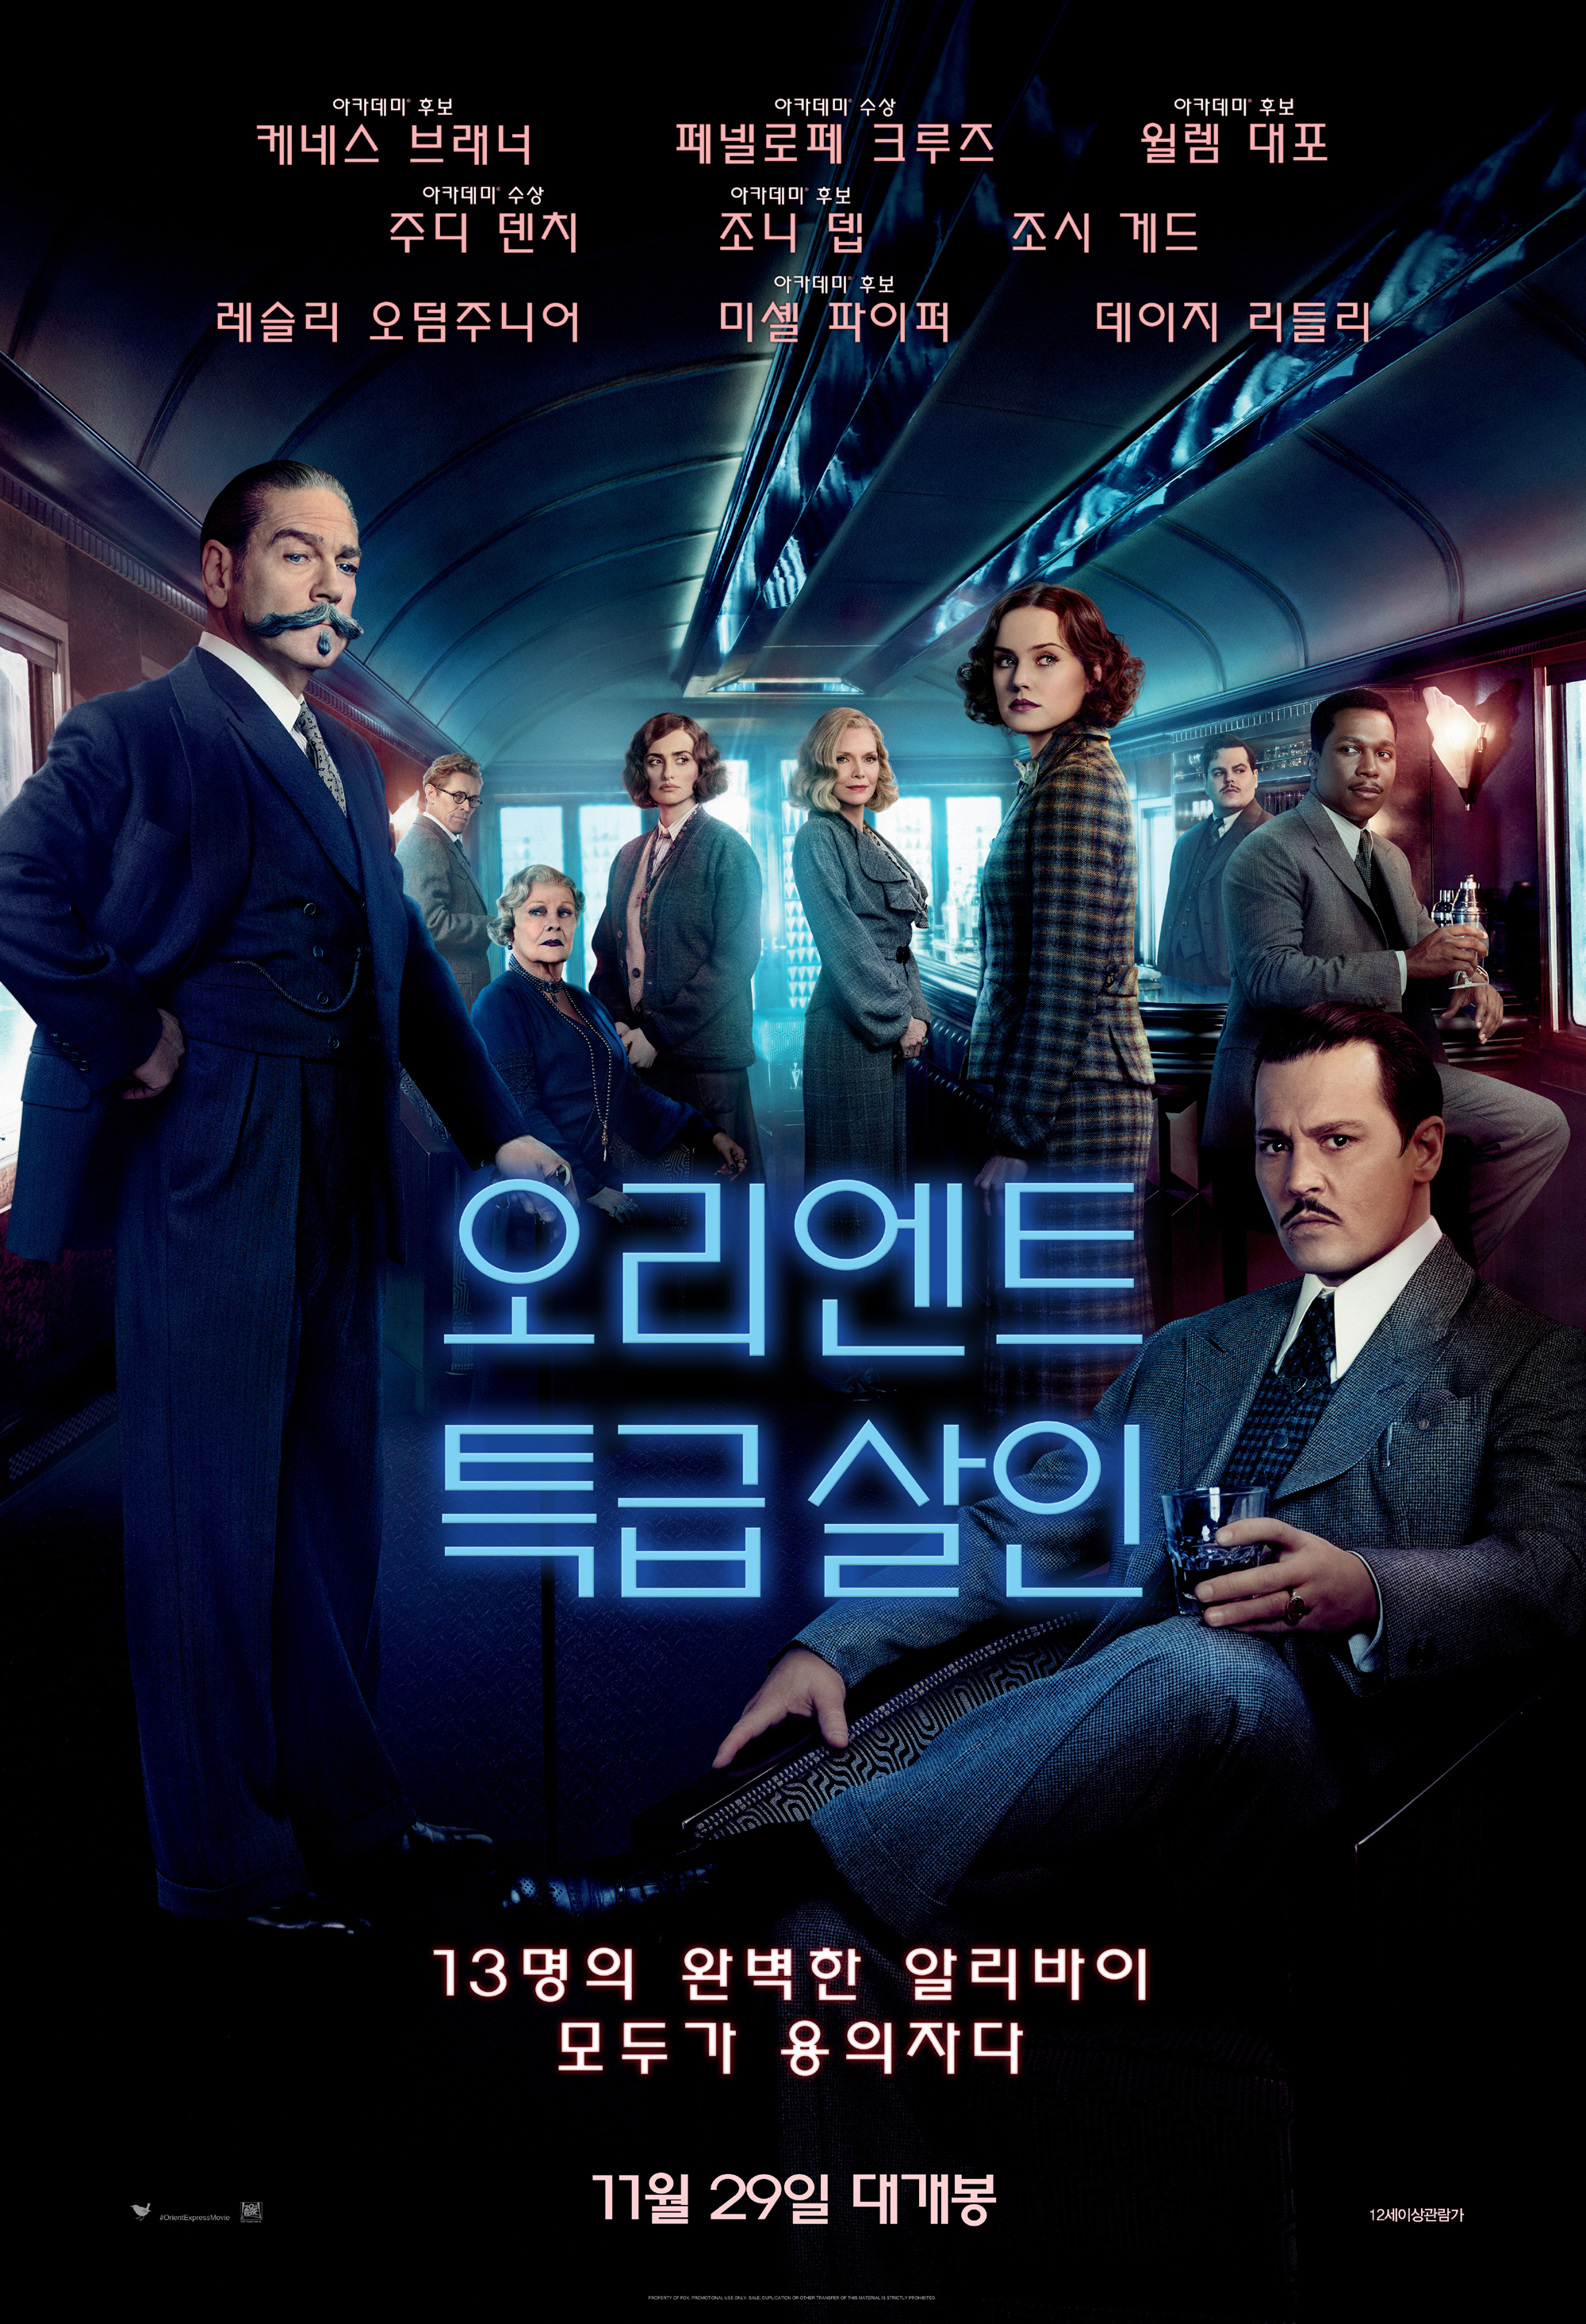 오리엔트 특급 살인 (Murder on the Orient Express, 2017)